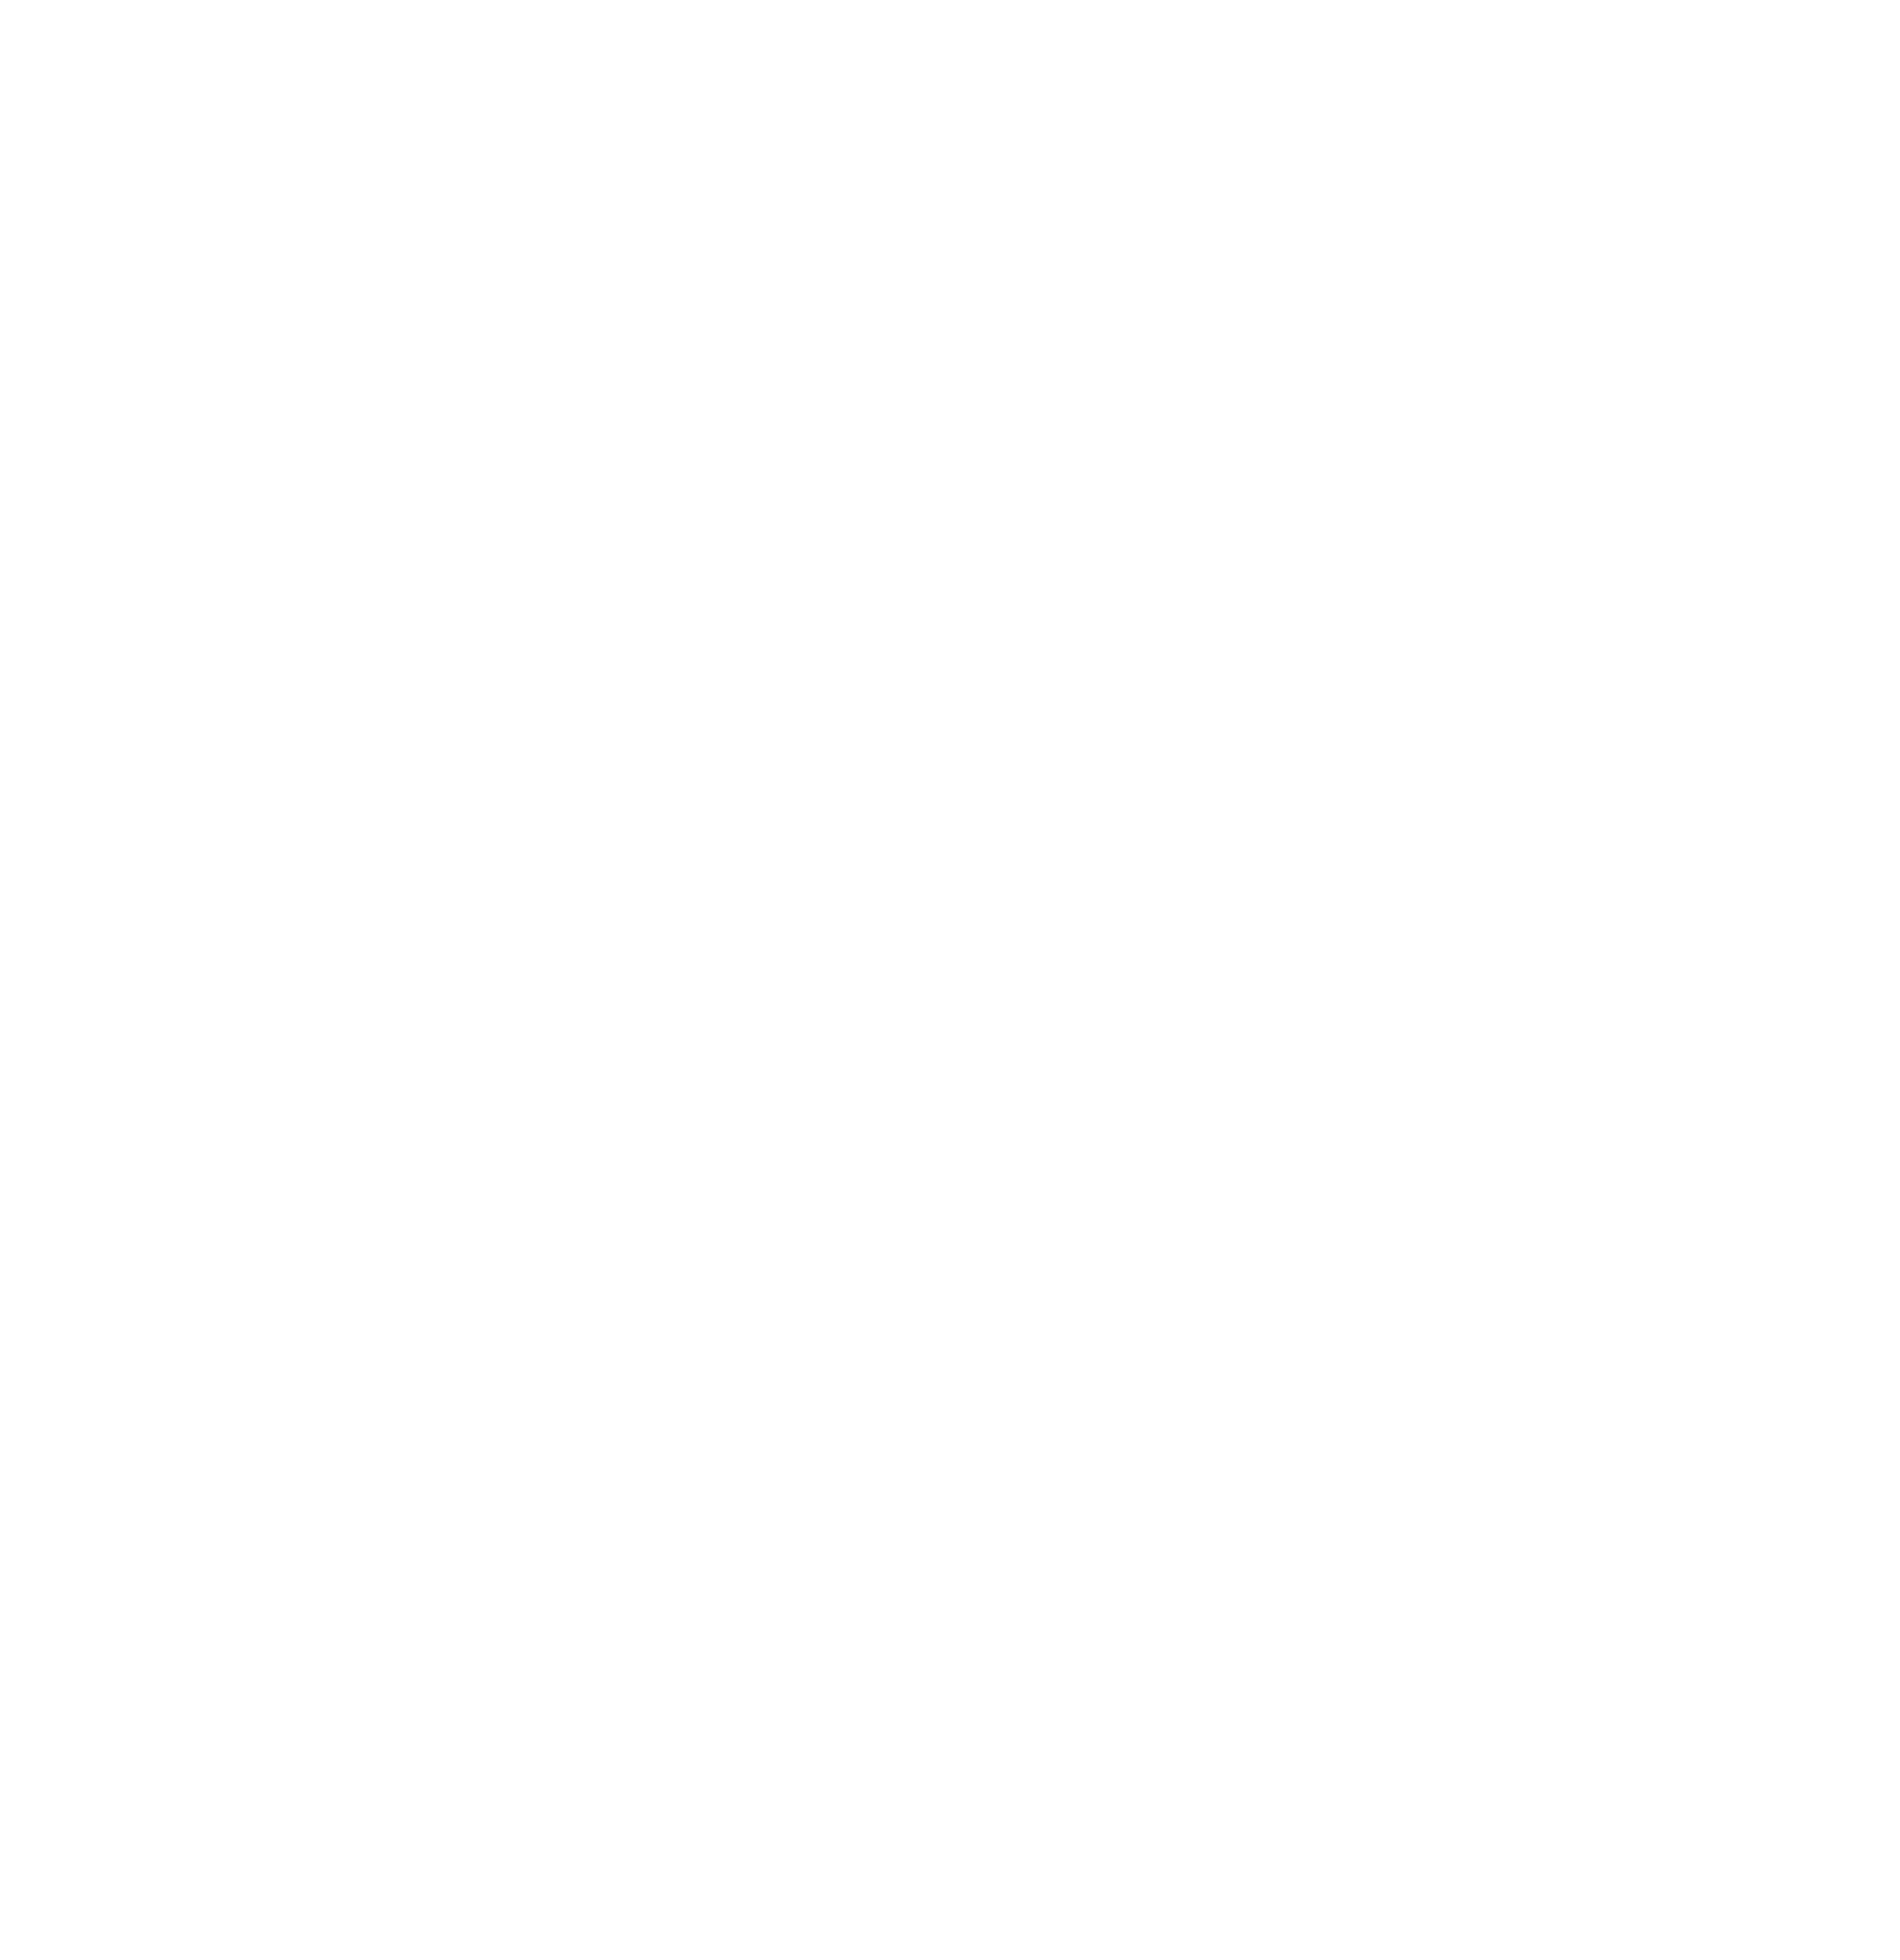 Holiday Loan - Warm up with rates as low as 5.99% APR!* Don't wait! Offer ends 12/31.